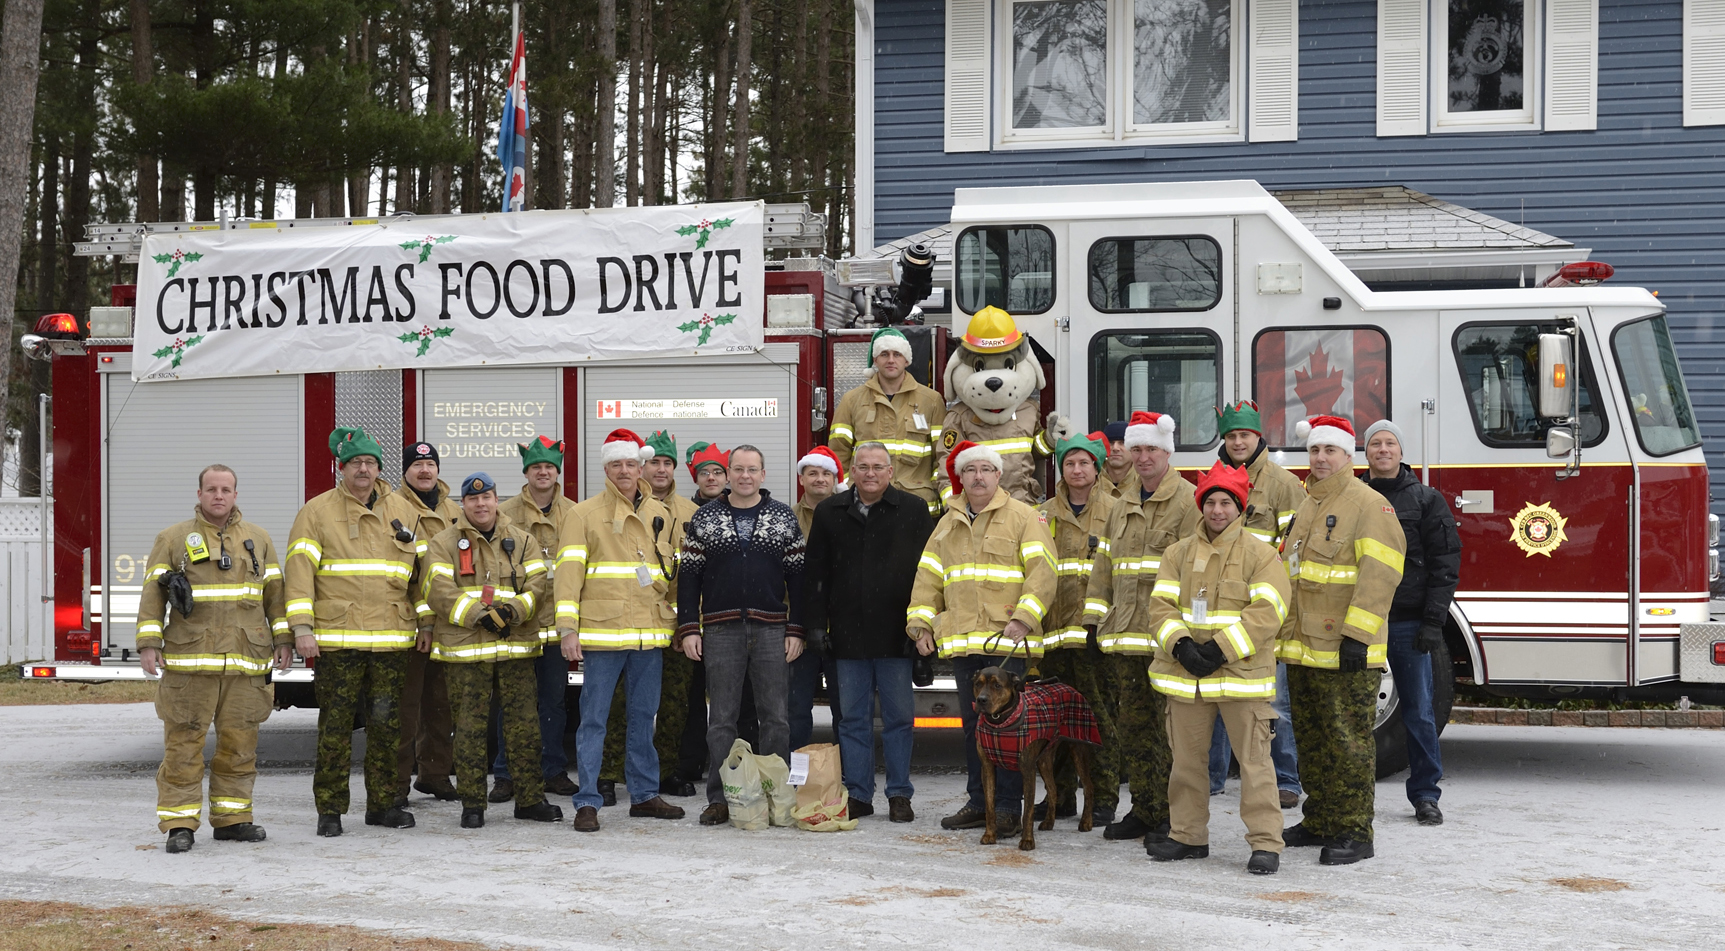 Firefighters from 14 Wing Greenwood, Nova Scotia, along with Sparky the fire dog, begin the 2014 Christmas Food Bank Drive by visiting Colonel Iain Huddleston (centre left), commander of 14 Wing, and Chief Warrant Officer Pierrot Jetté, wing chief warrant officer (centre right). The Food Bank Drive is an annual event that provides much-needed food stuffs to local food banks in the Annapolis Valley. PHOTO: Corporal Don Kirkwood